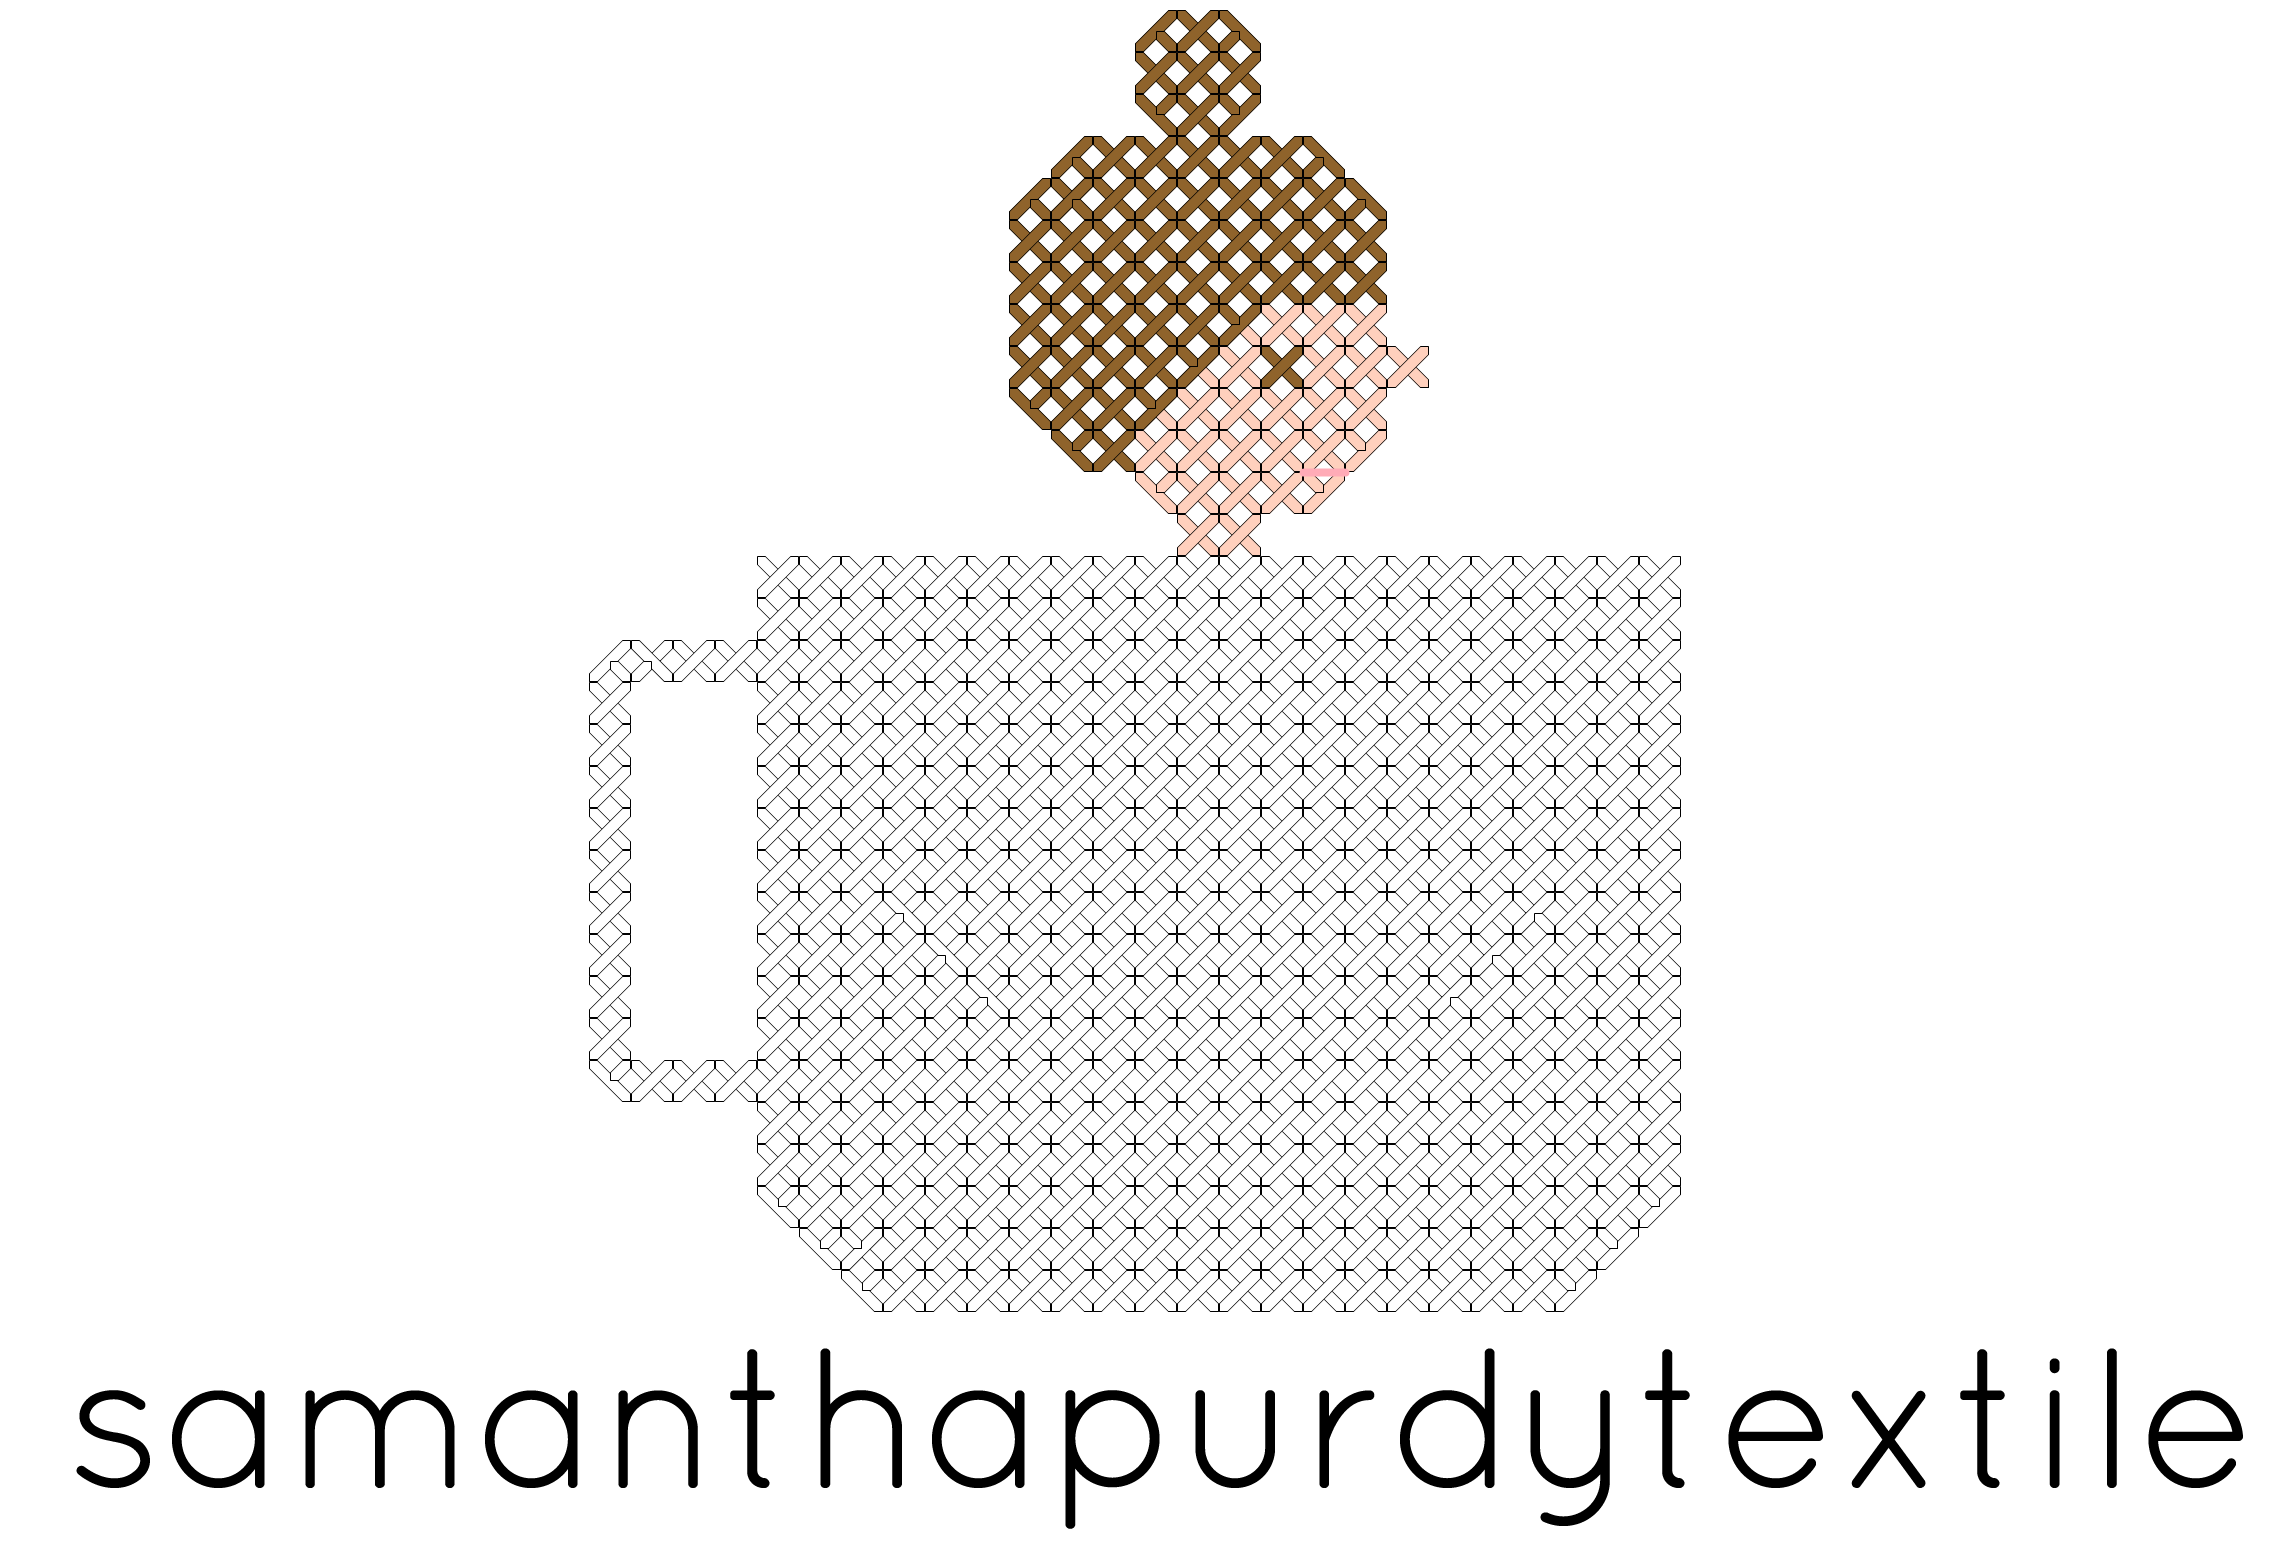 Samanthapurdytextiles Cross stitch pattern logo